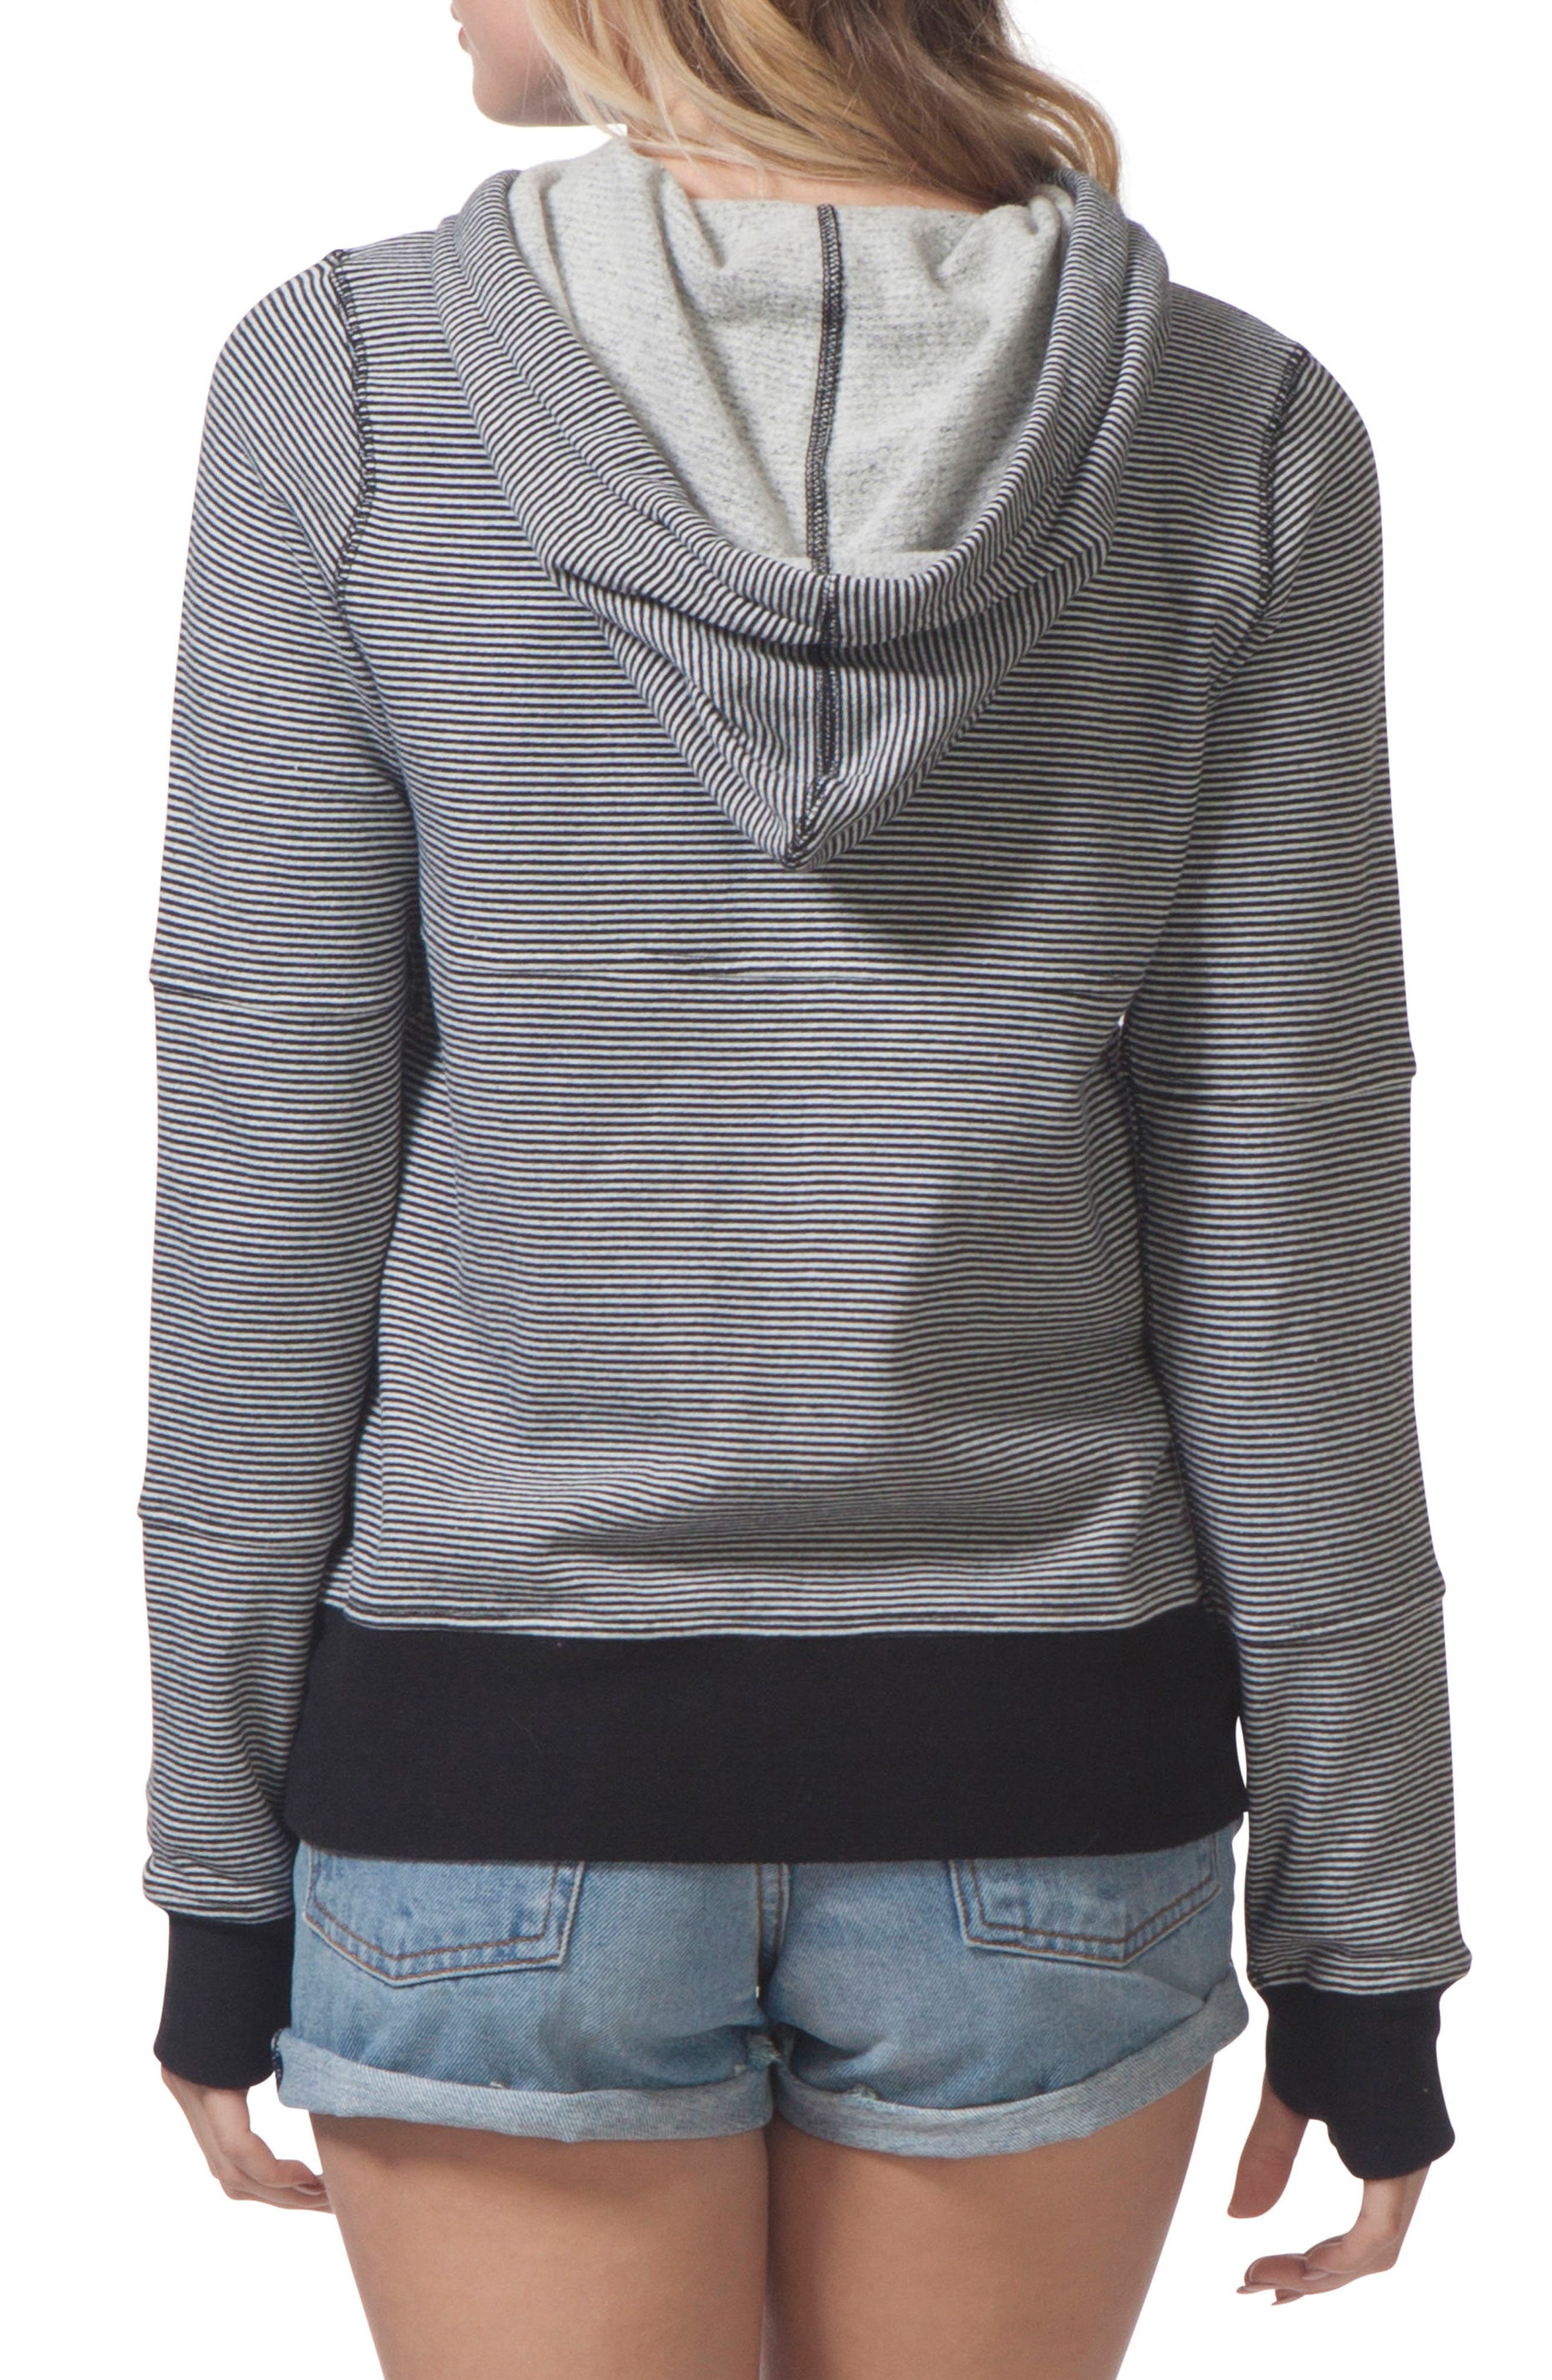 Surf Threads Hoodie,                             Alternate thumbnail 2, color,                             001